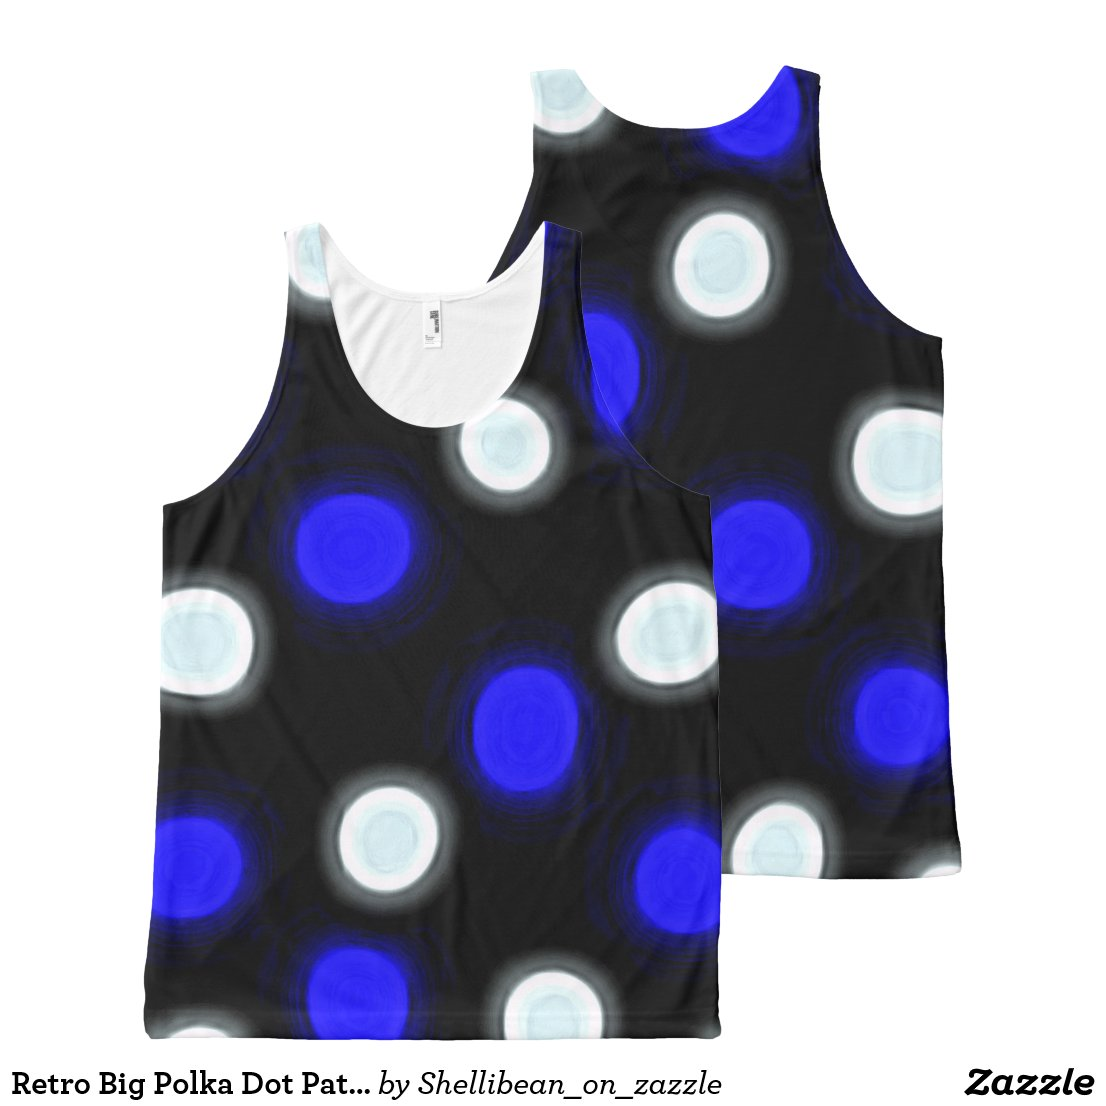 Brilliant Blue and White Polka Dots on Black All-Over-Print Tank Top